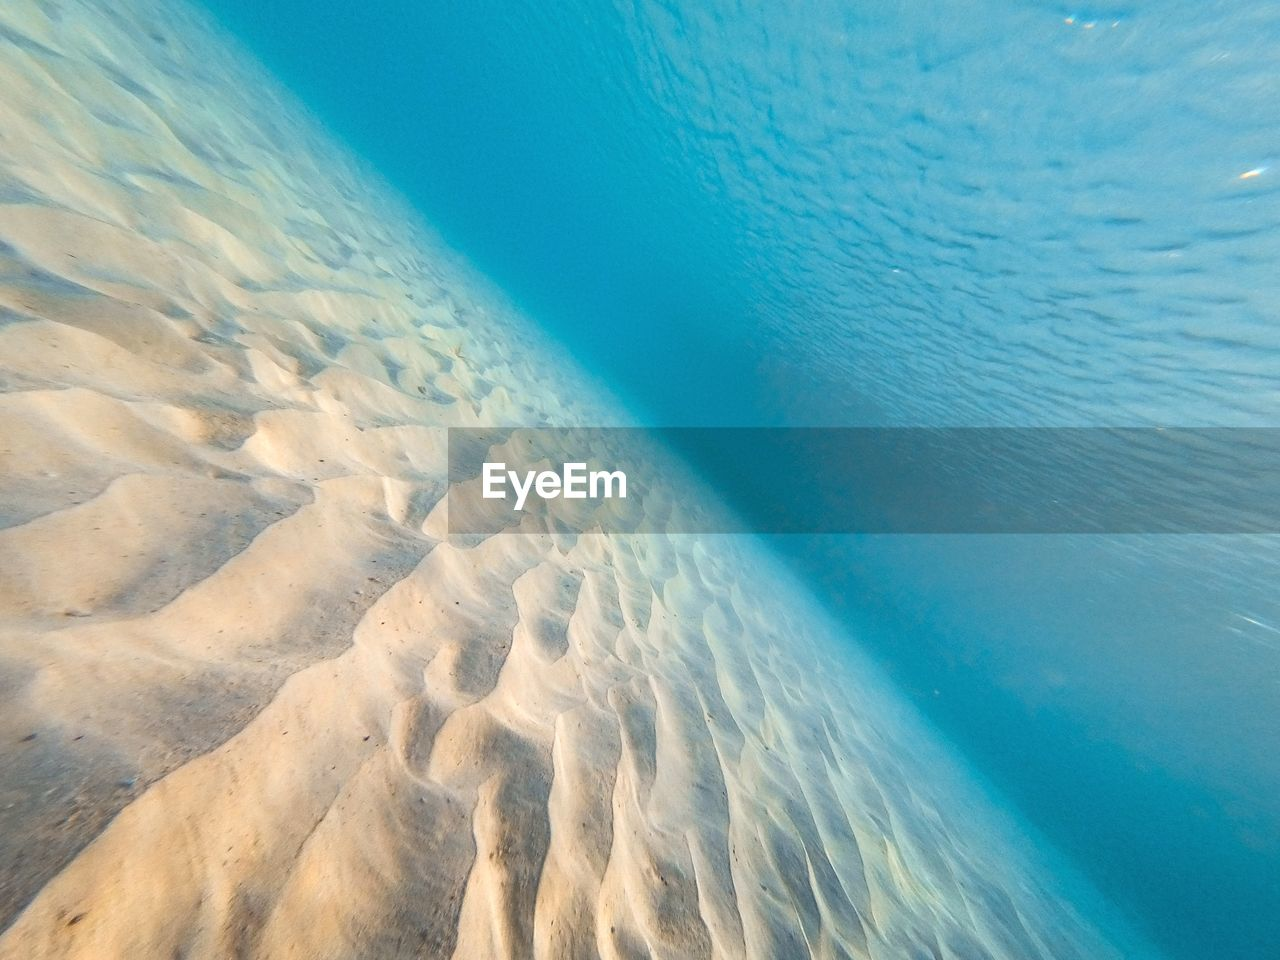 water, sea, beauty in nature, tranquility, scenics - nature, blue, no people, nature, day, sand, land, tranquil scene, beach, idyllic, motion, outdoors, high angle view, close-up, sunlight, turquoise colored, marine